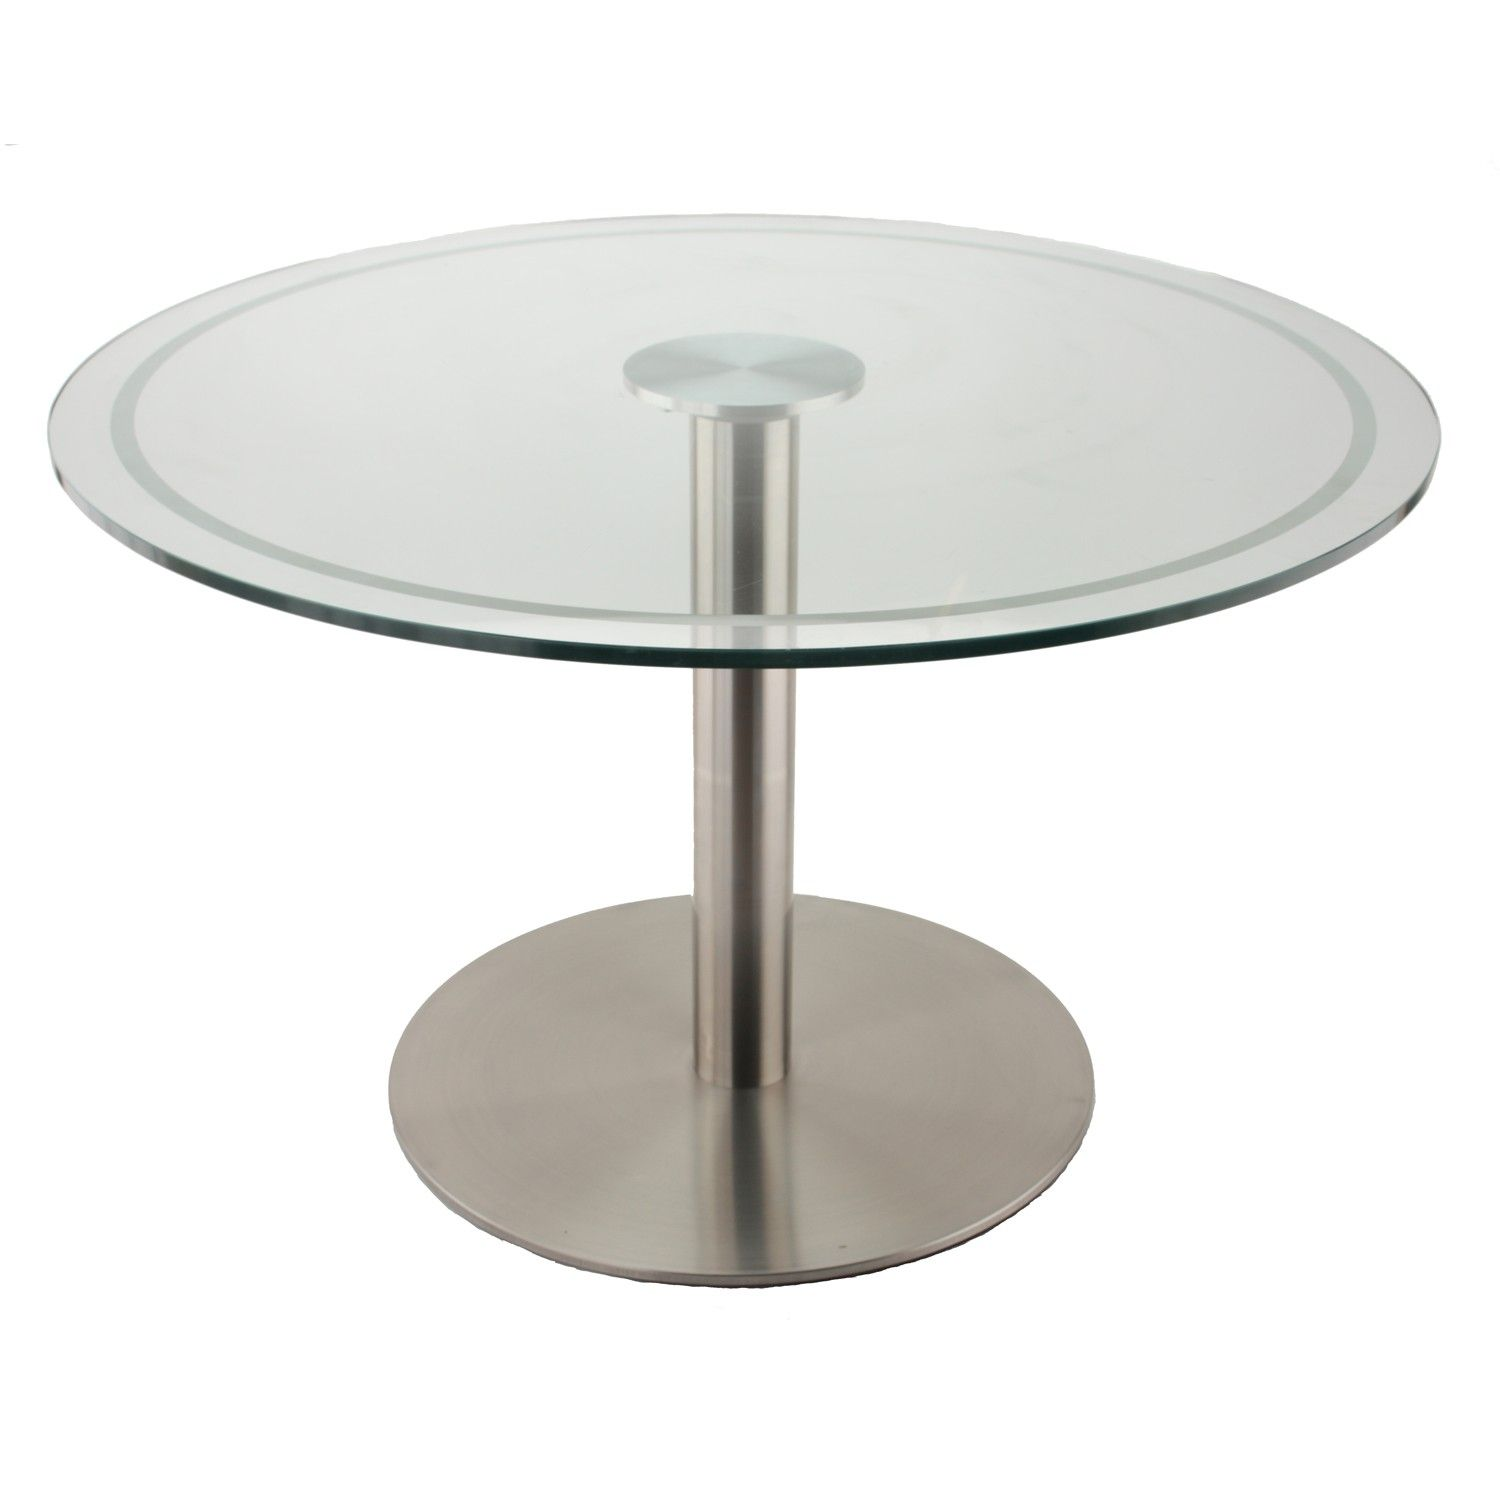 Incroyable The RFL750 Stainless Steel Table Base With Glass Table Top, Using Our Glass  Top Adapter